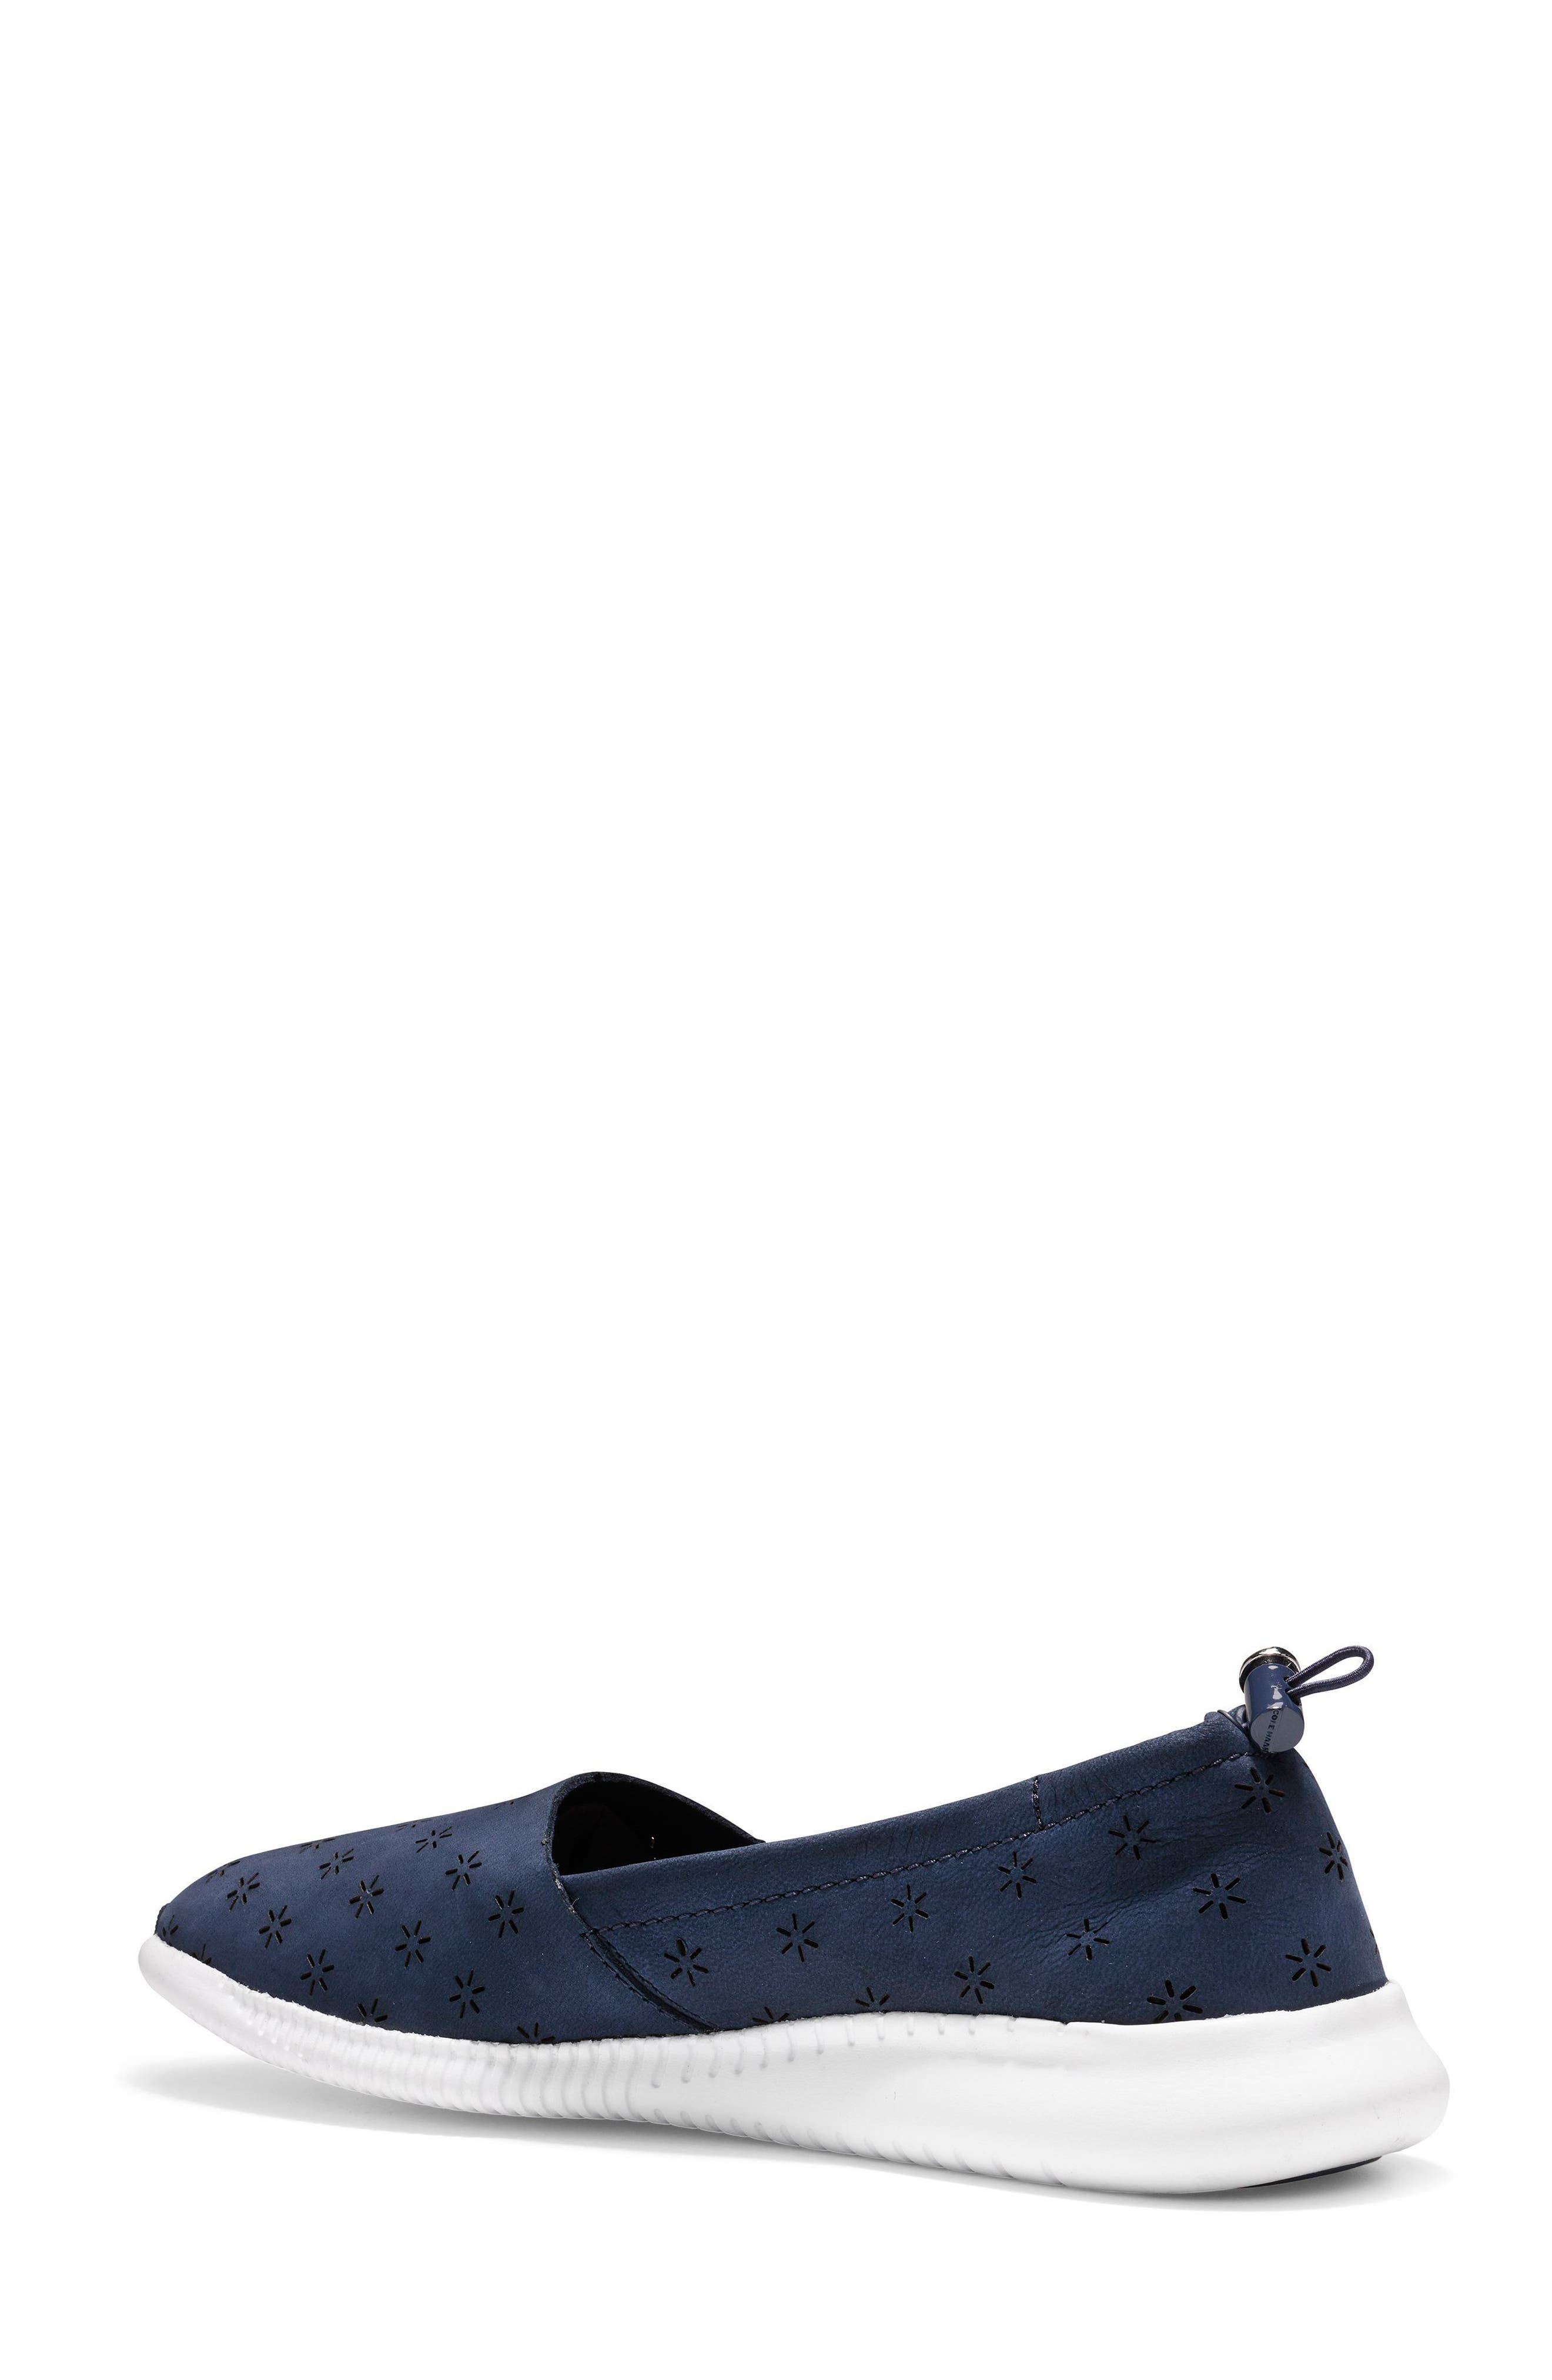 Studiogrand Perforated Slip-on,                             Alternate thumbnail 9, color,